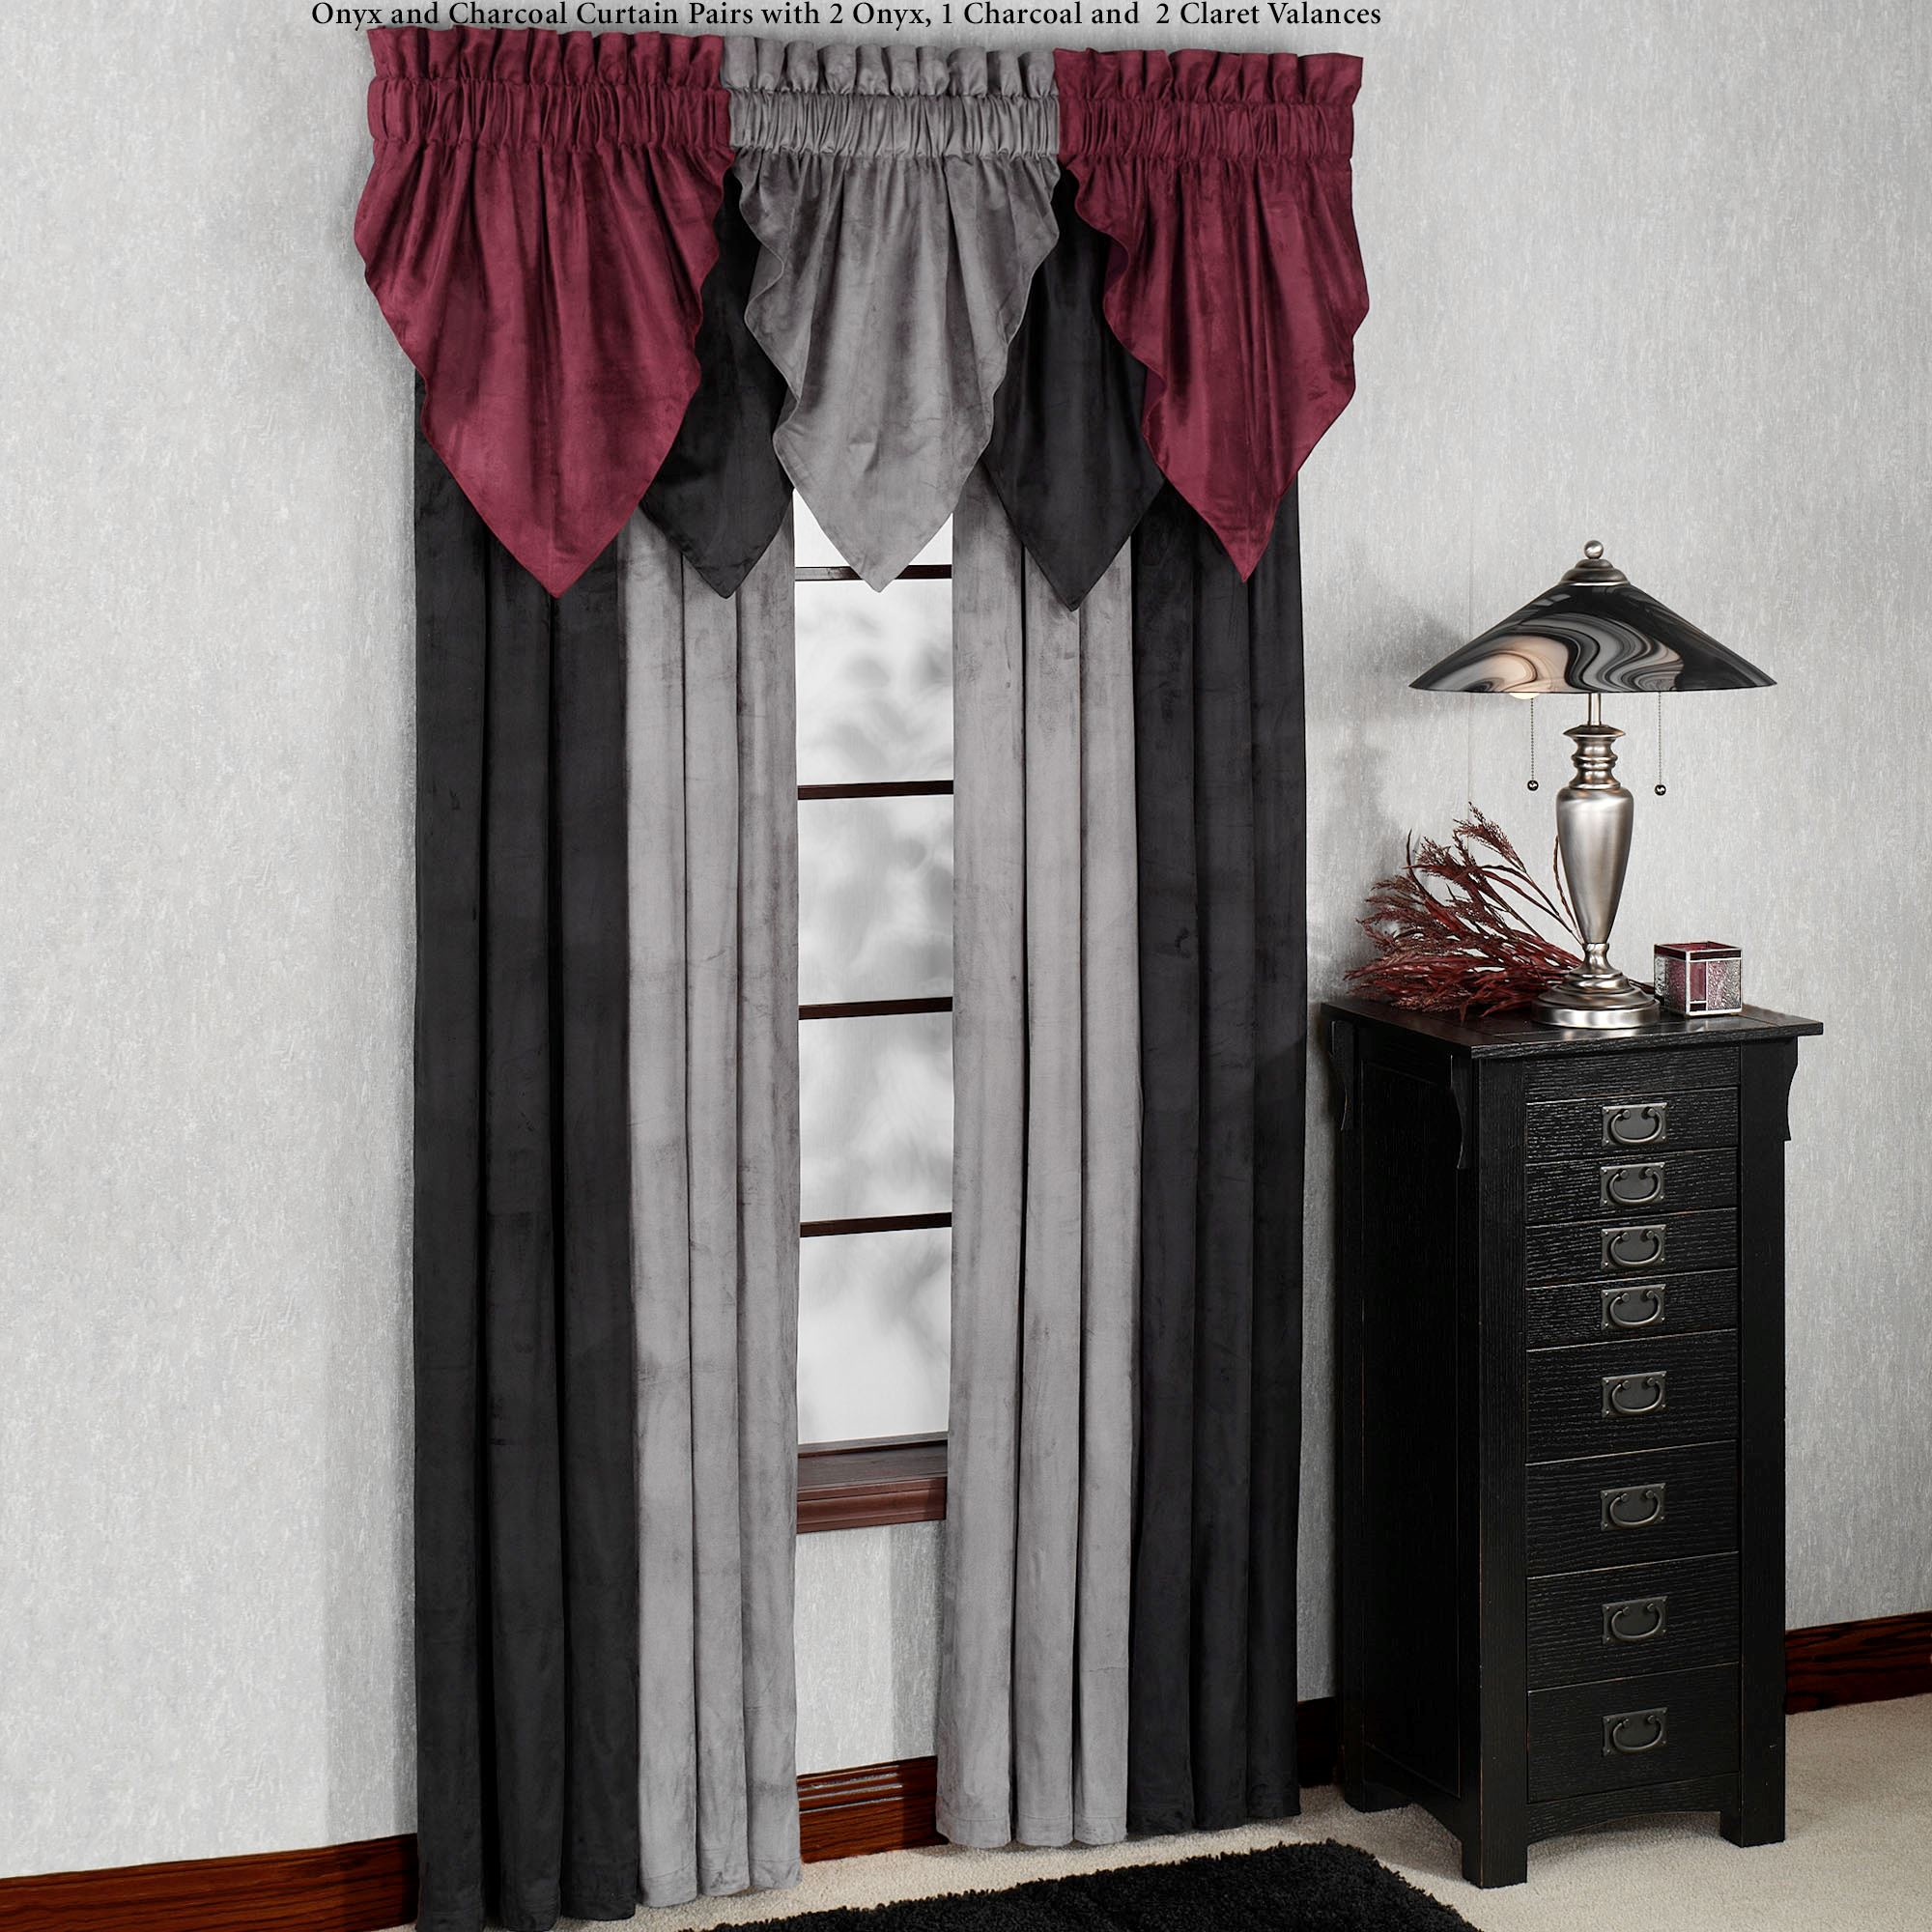 Window Curtains Drapes and Valances